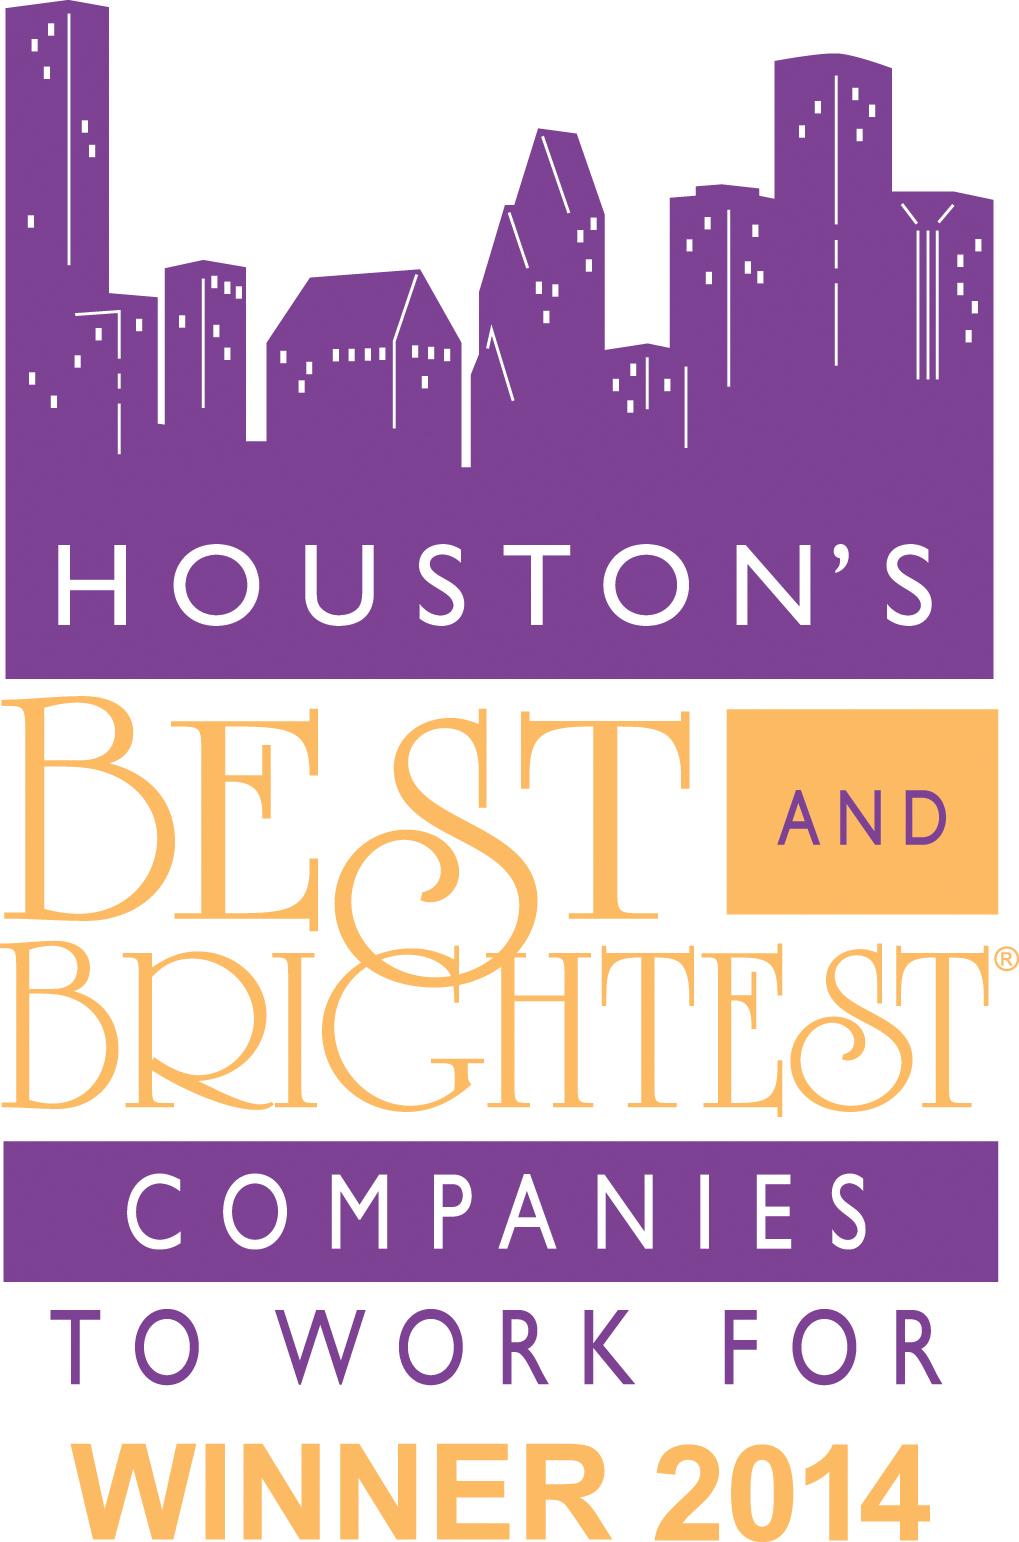 Aerotek Named to Houston's Best and Brightest Companies to Work For List